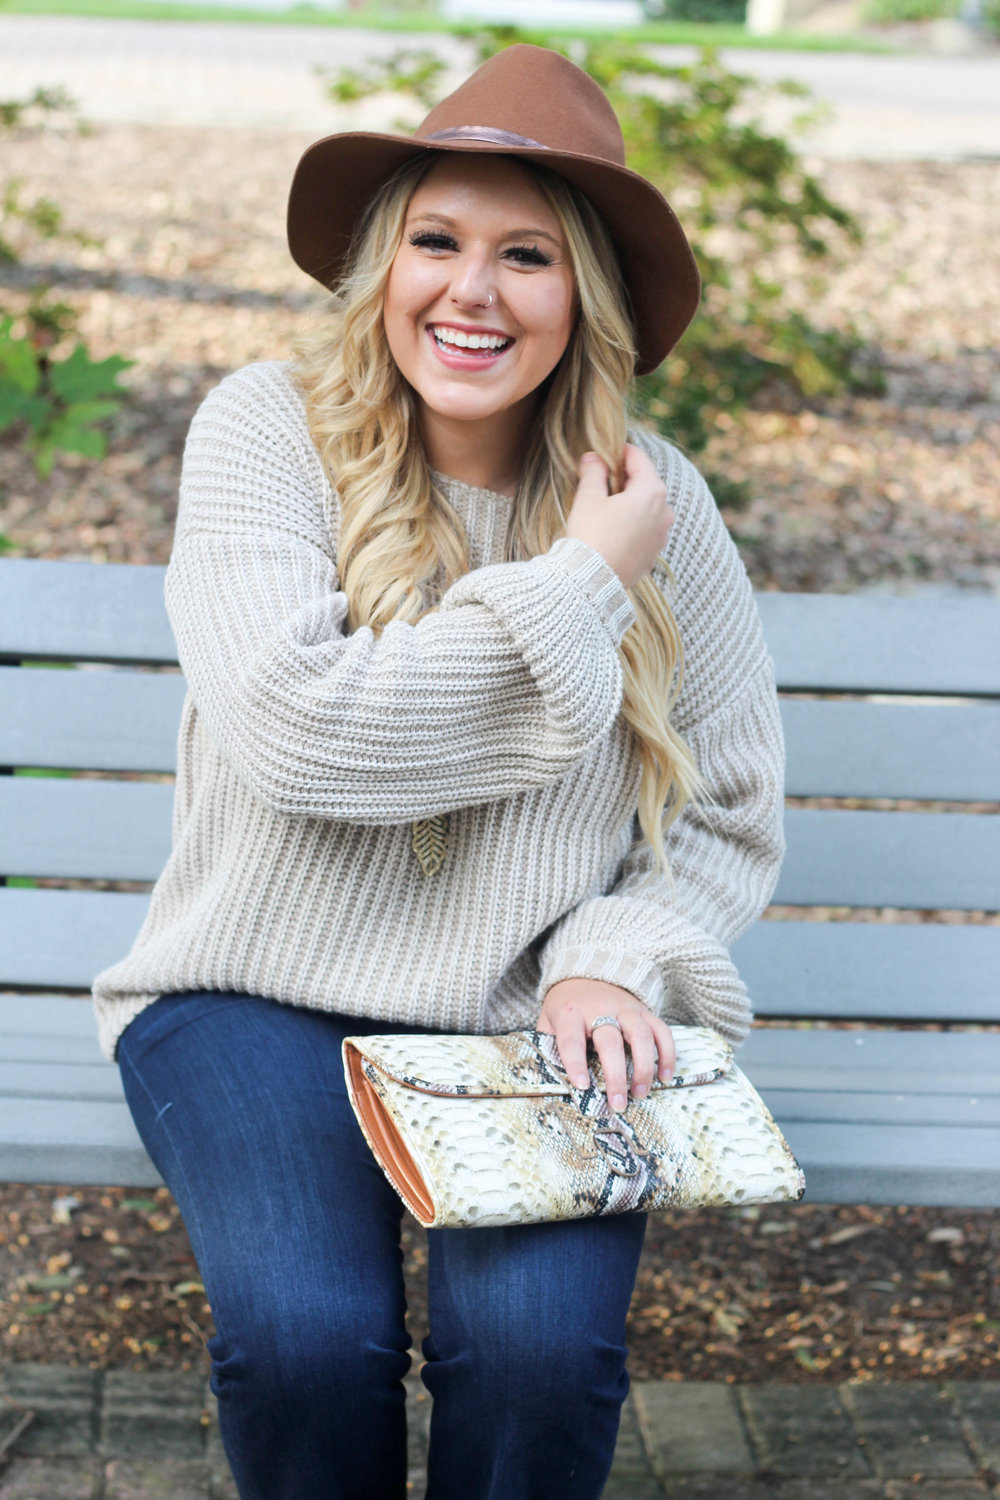 Hat: Target / Sweater: Tobi / Jeans: Stitch Fix / Clutch: Old / Booties: Old / Sunnies: Vintage Store